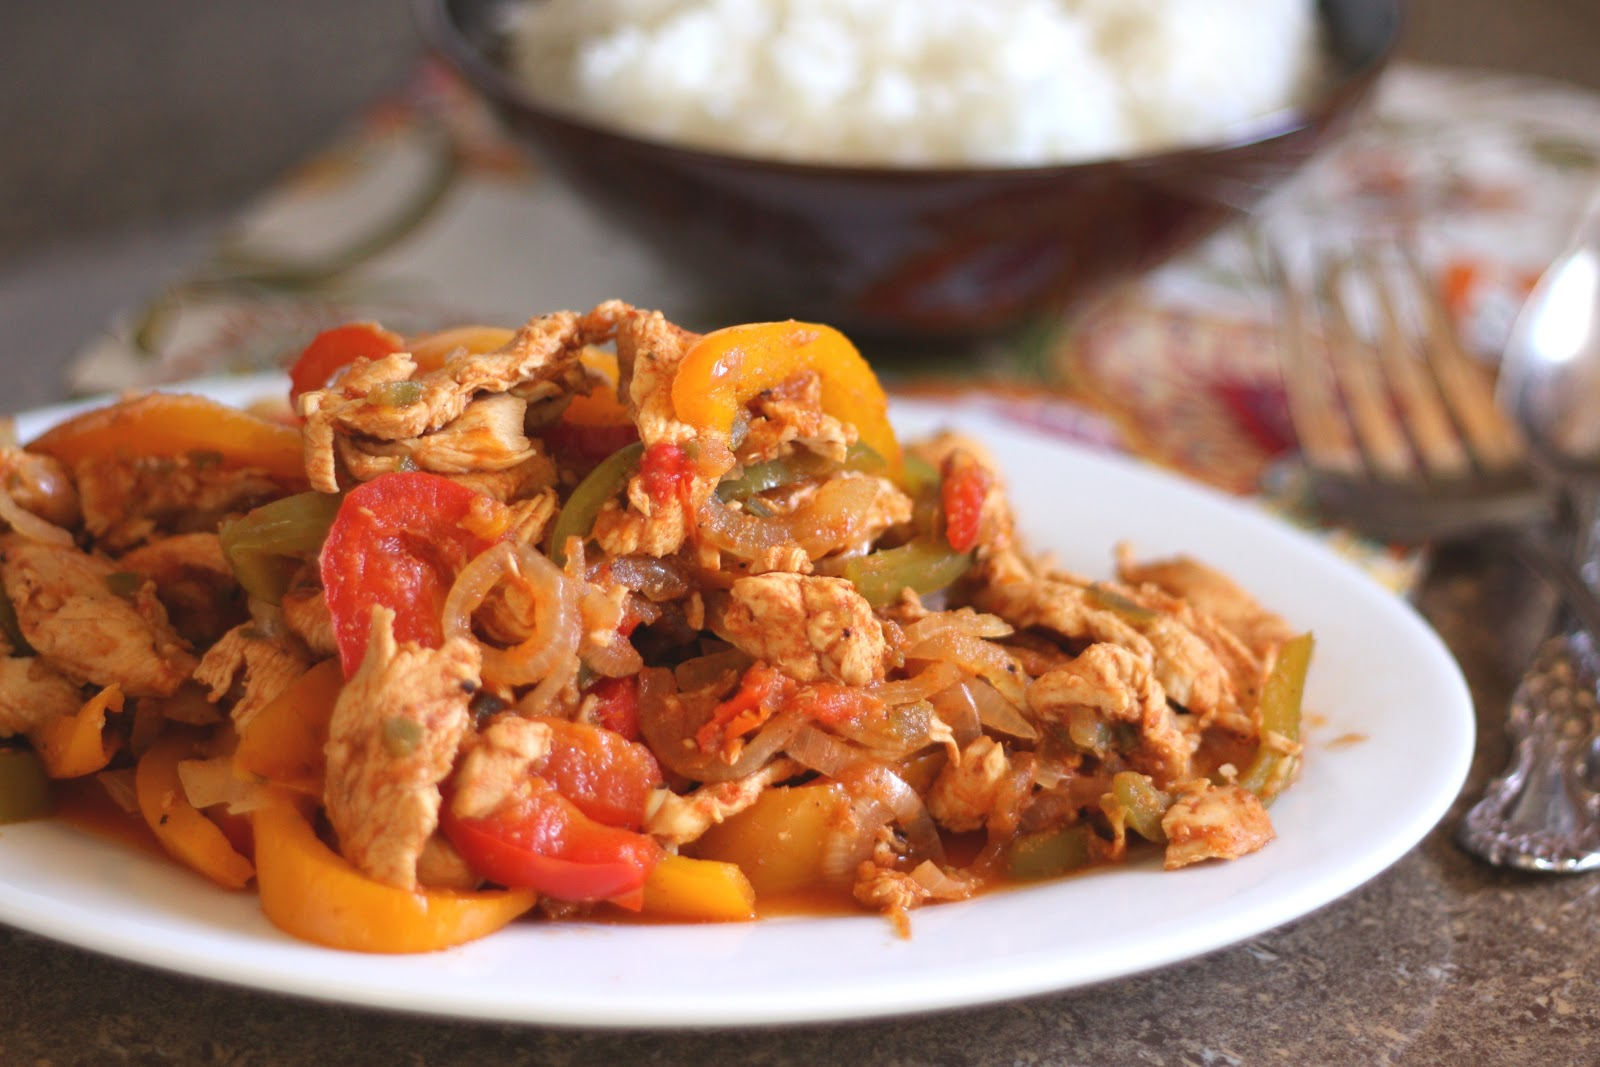 Barefeet In The Kitchen: Crock-Pot Chicken Fajitas